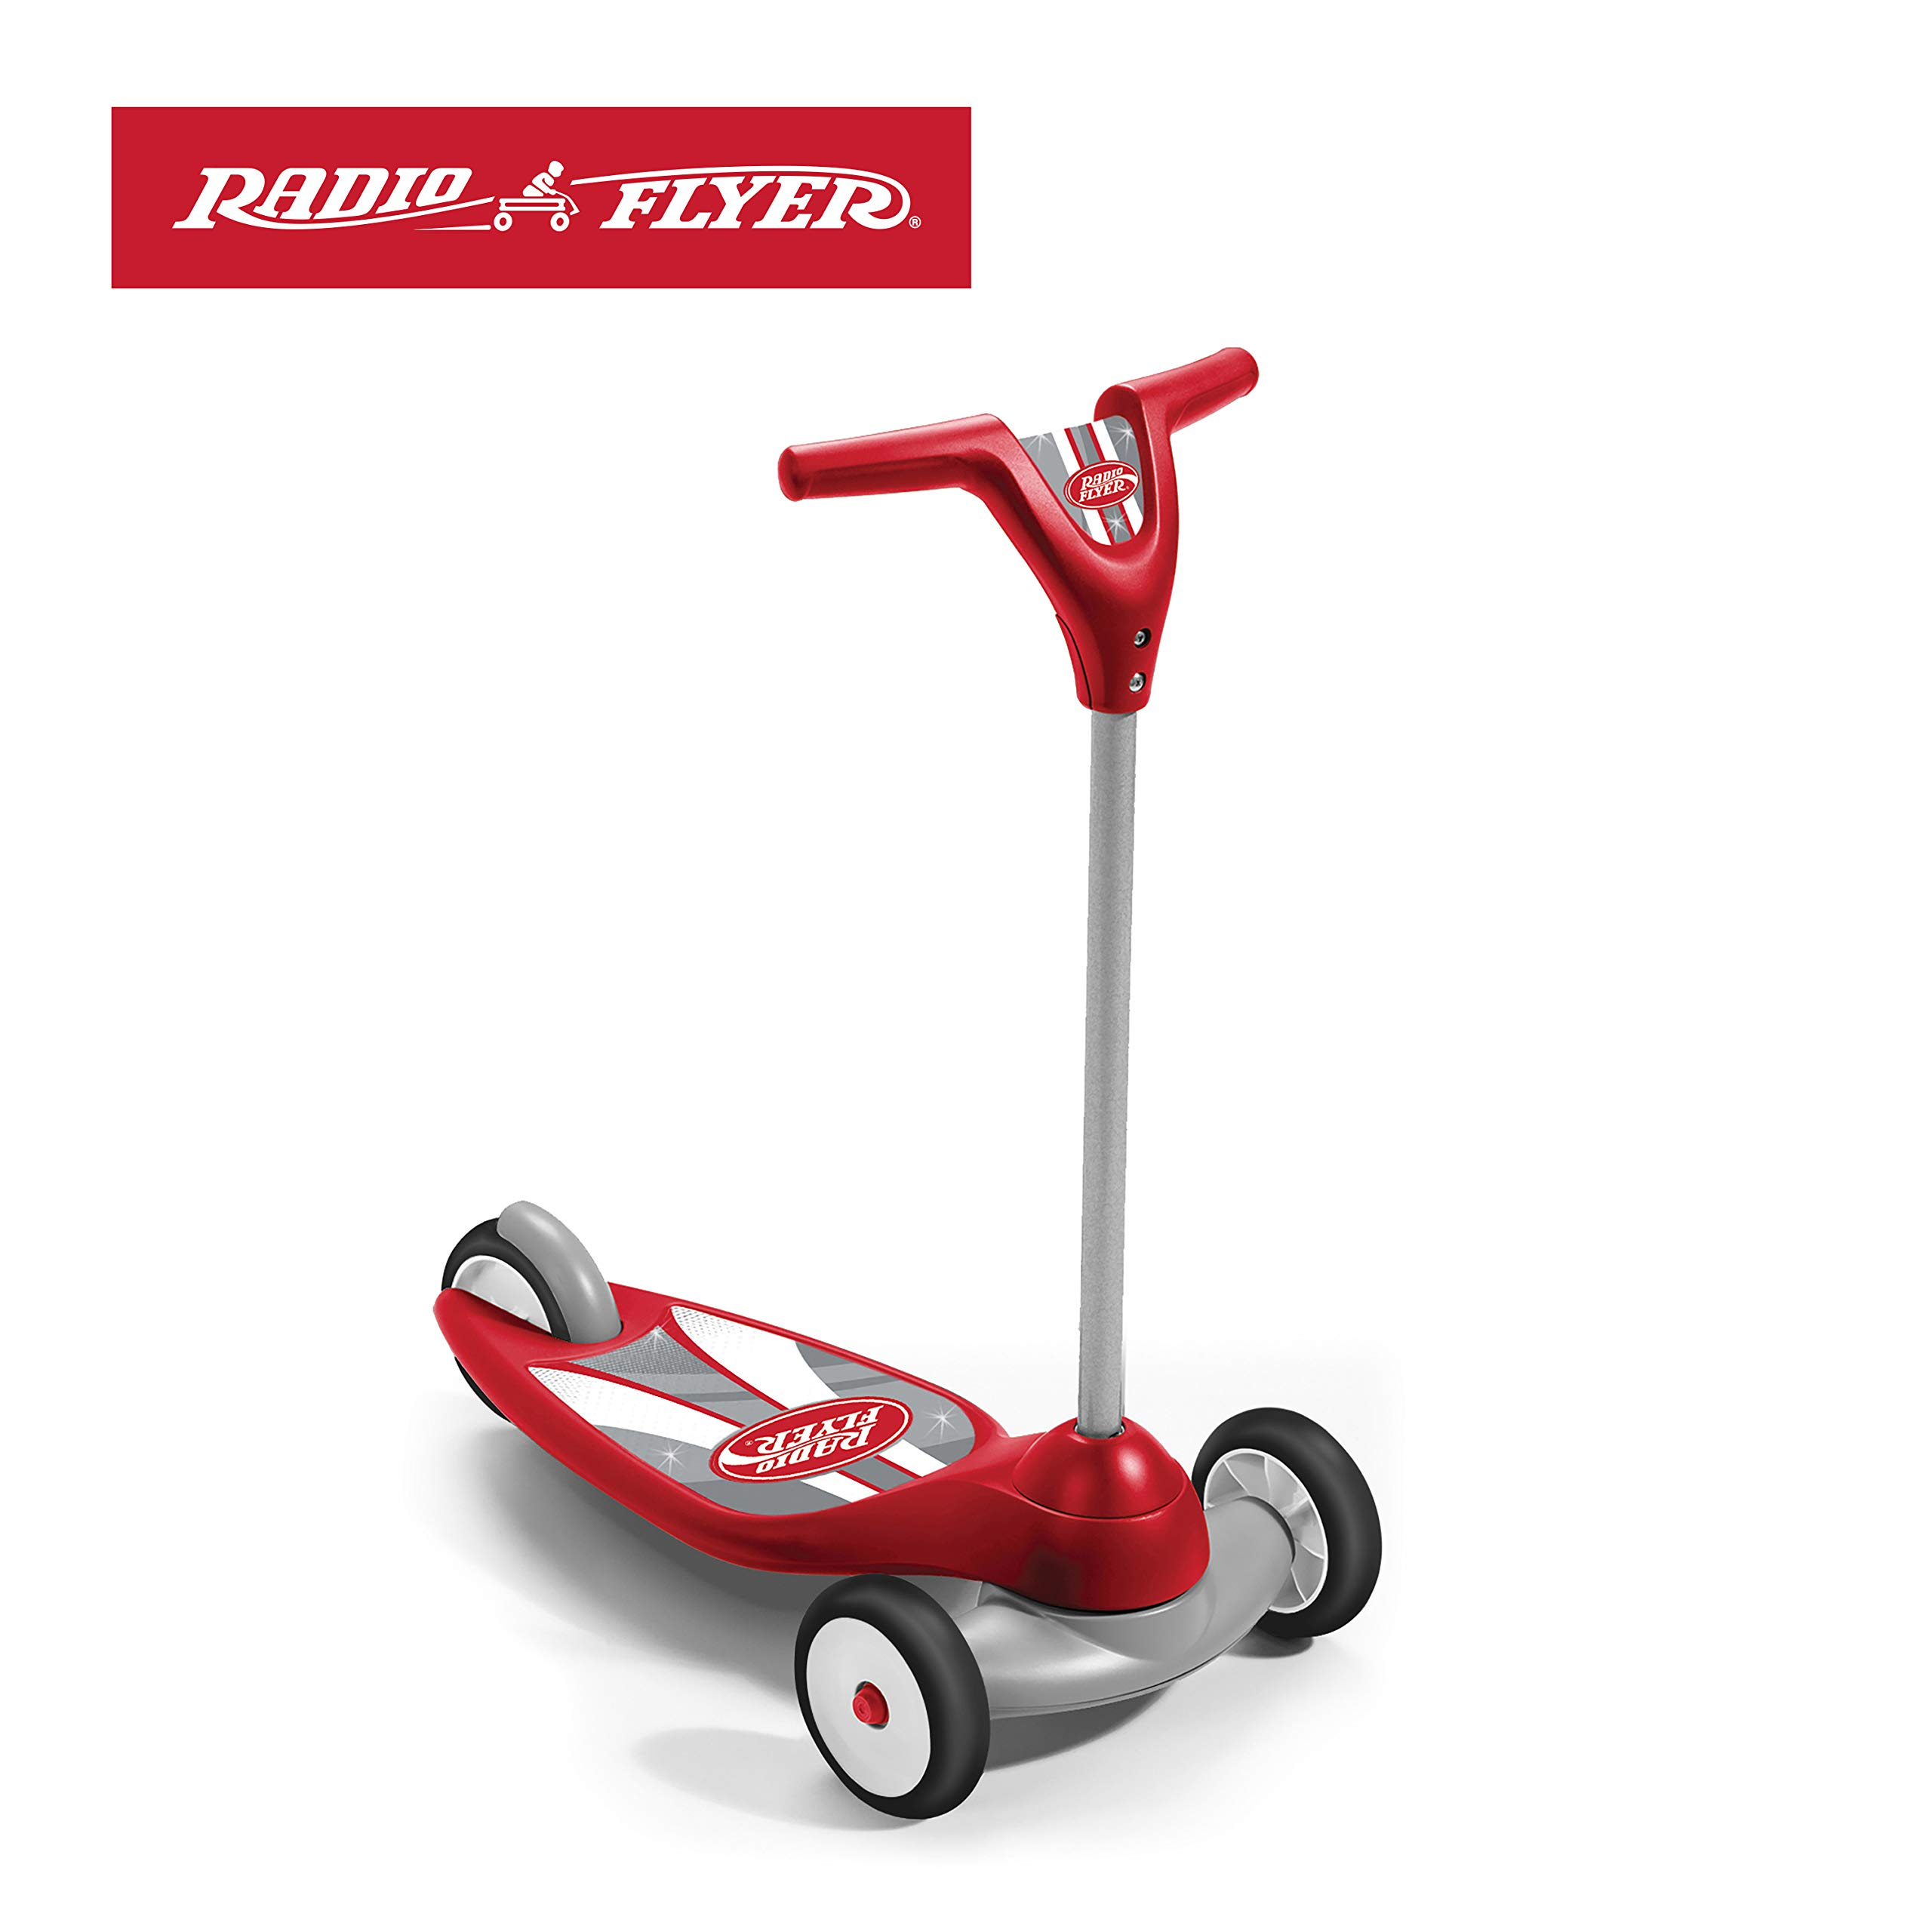 Radio Flyer My 1st Scooter, Red by Radio Flyer